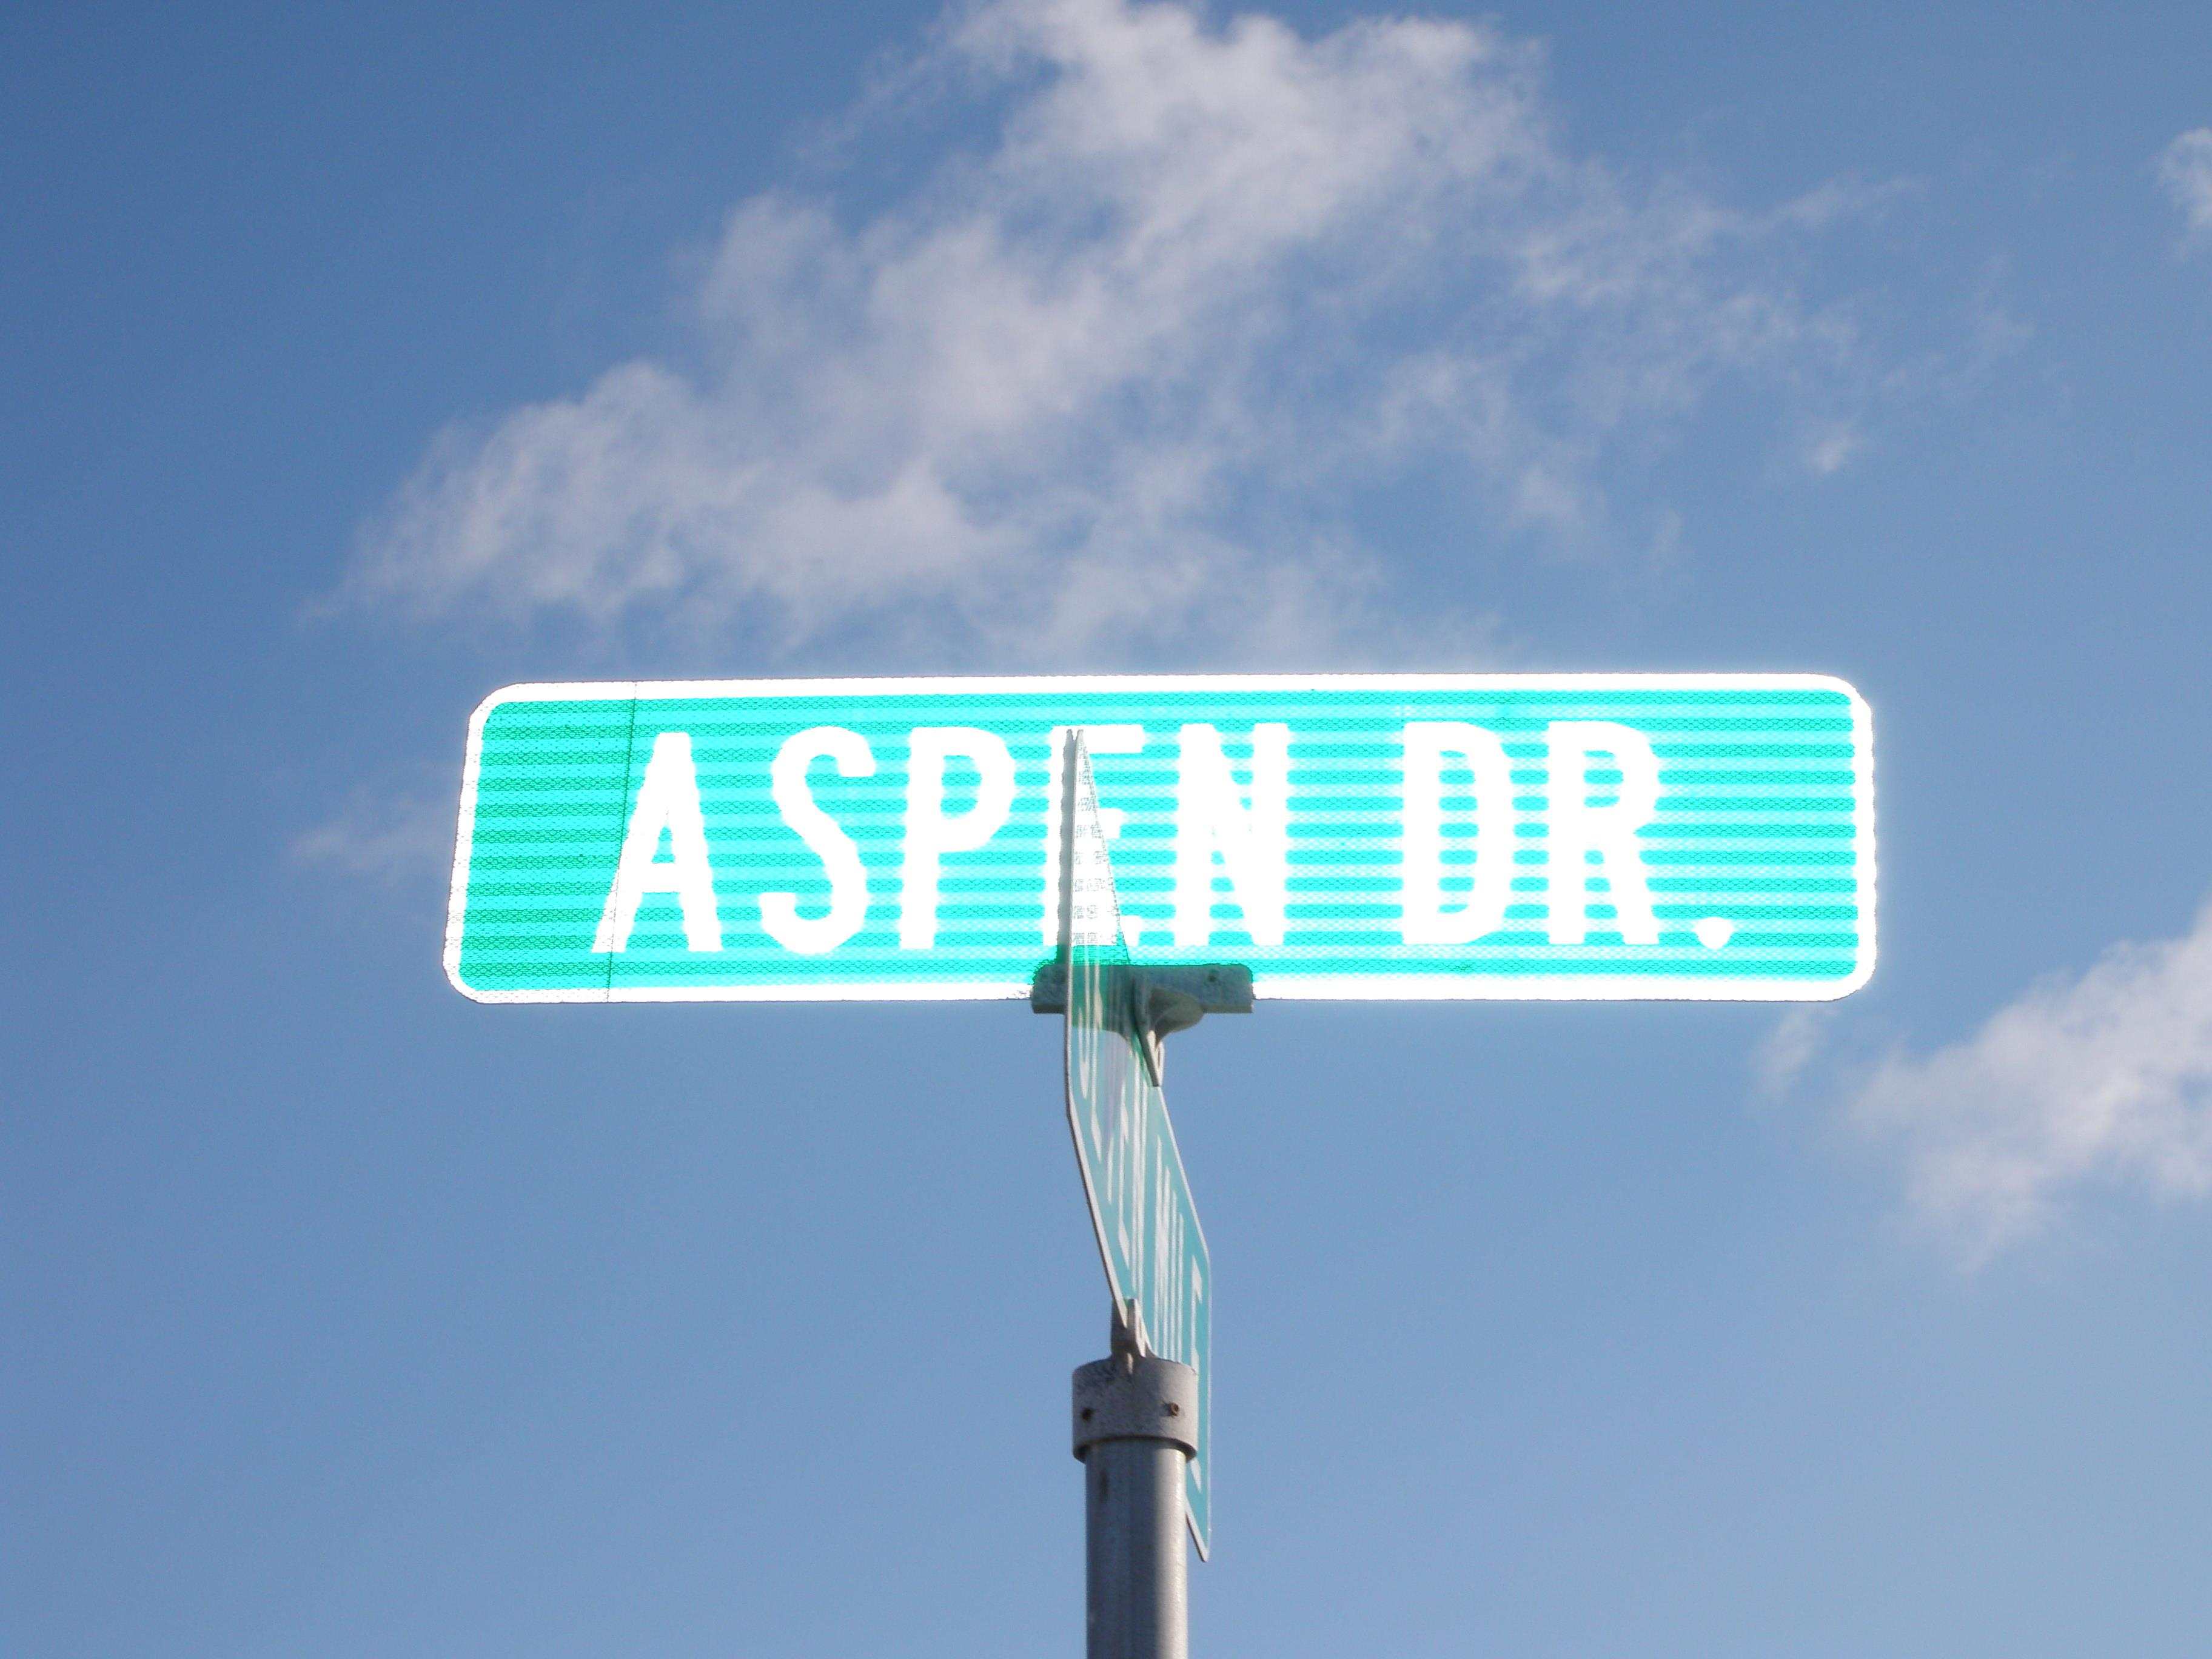 Aspen and 7 Mile street sign livonia michigan